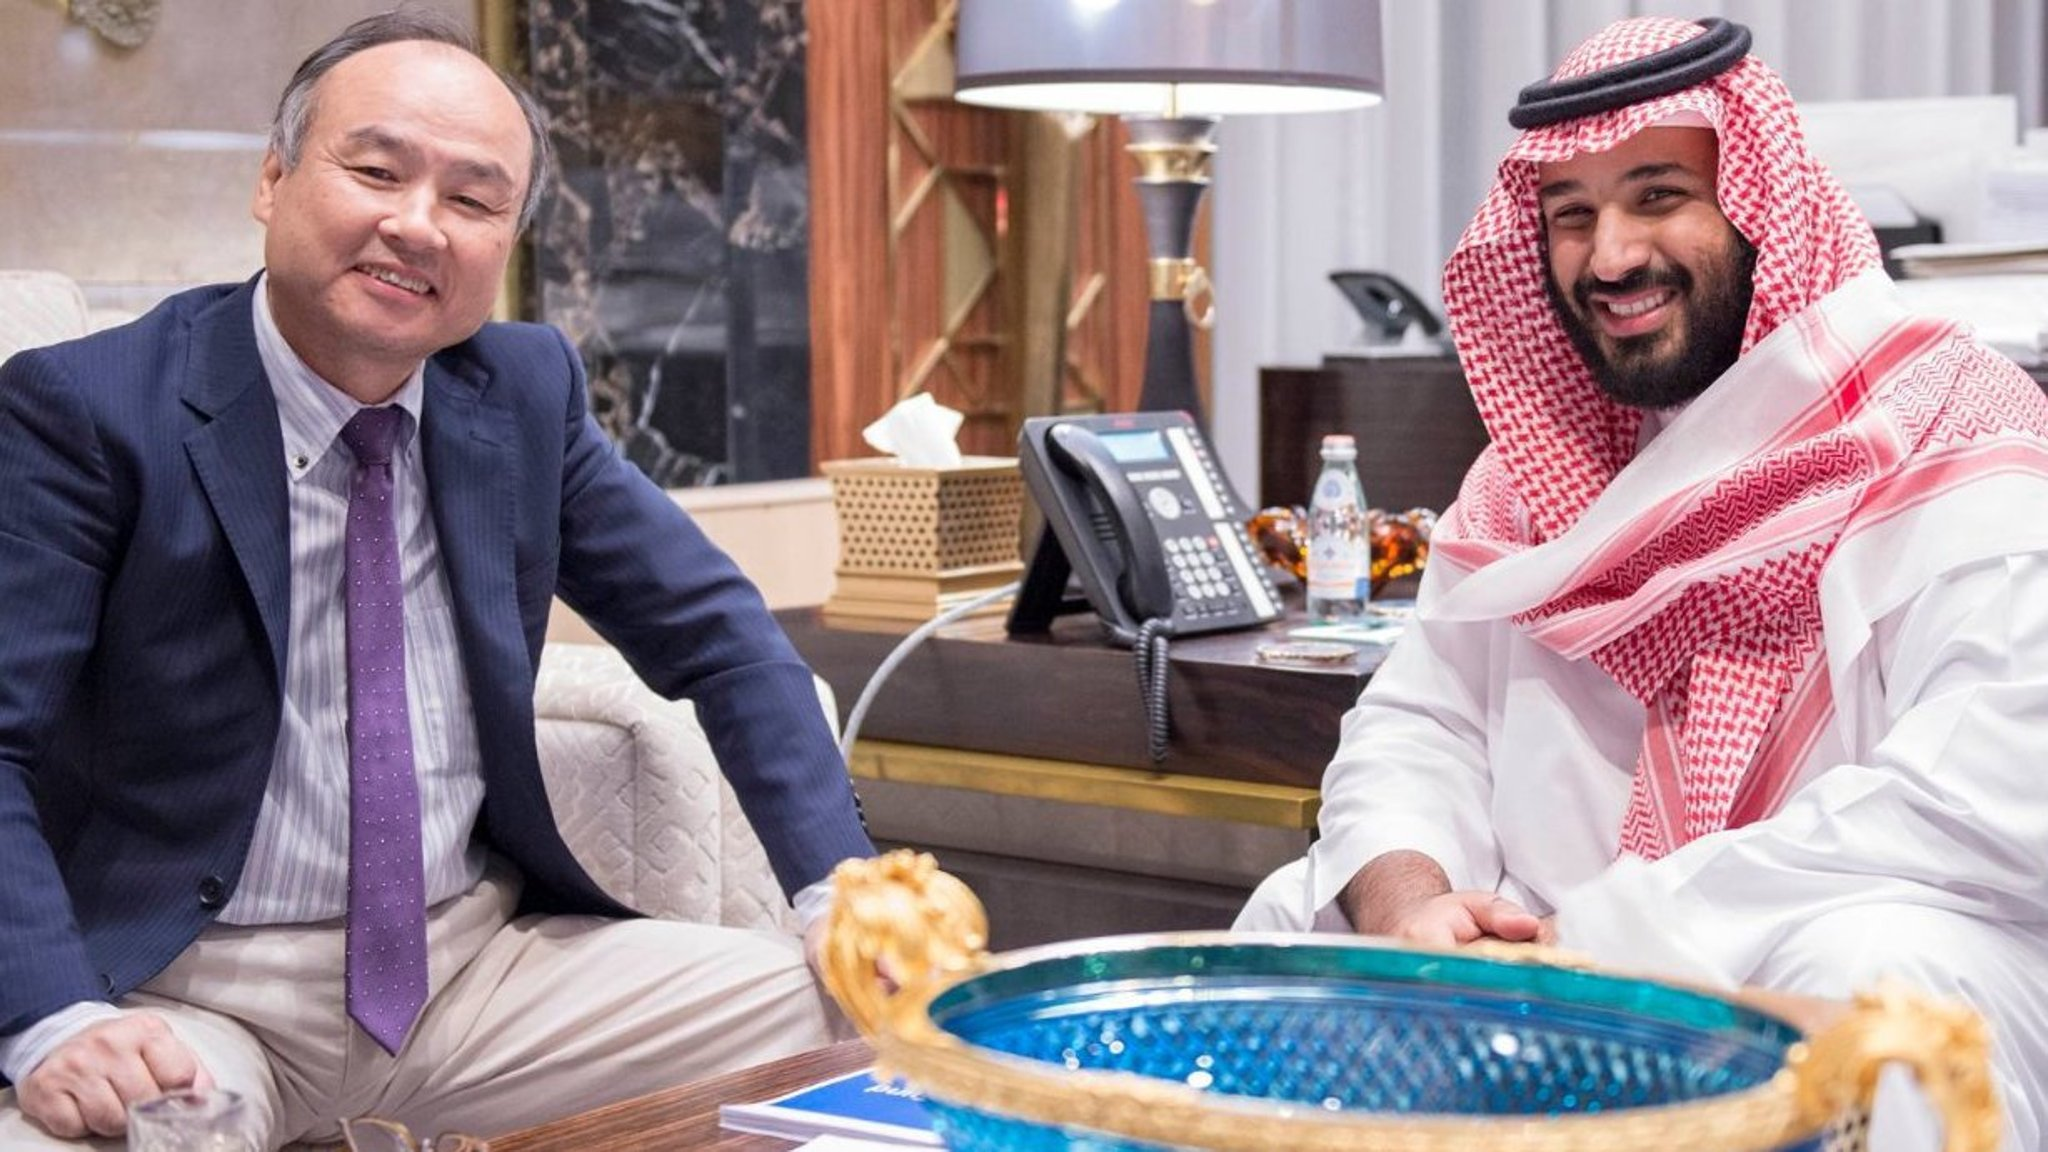 SoftBank_Arab_Saudi_tien.jpeg